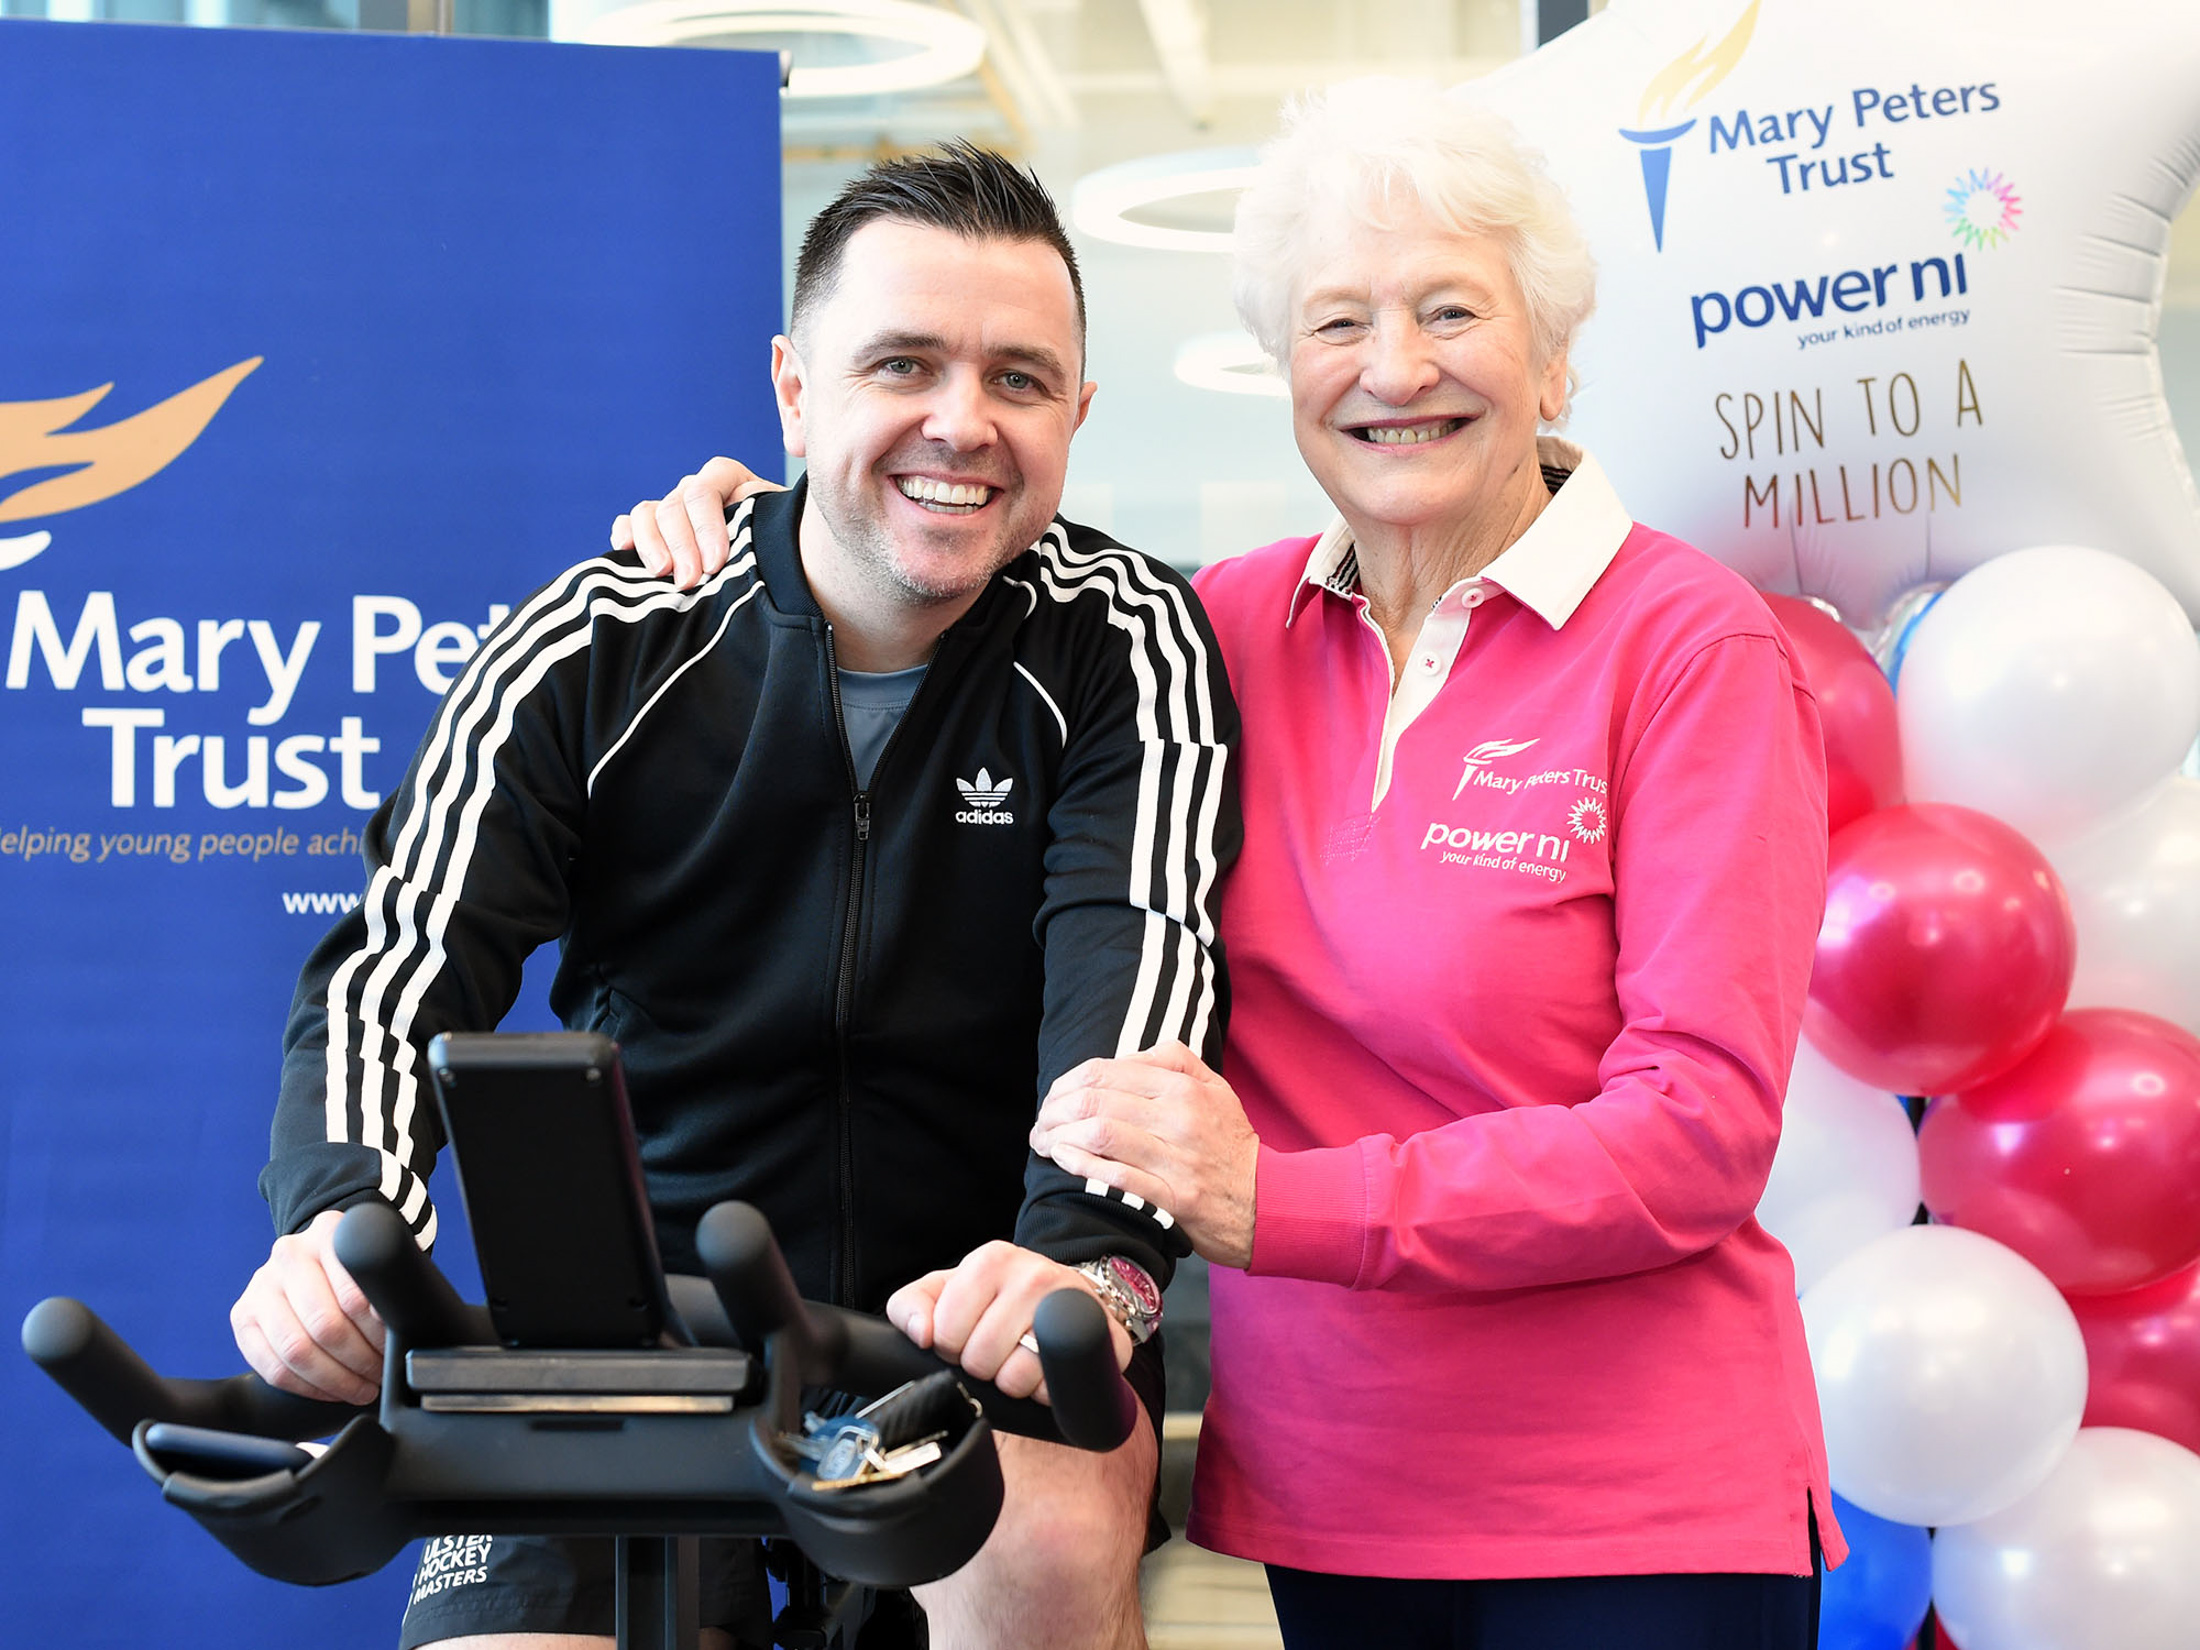 Spinathon Mary Peters Trust